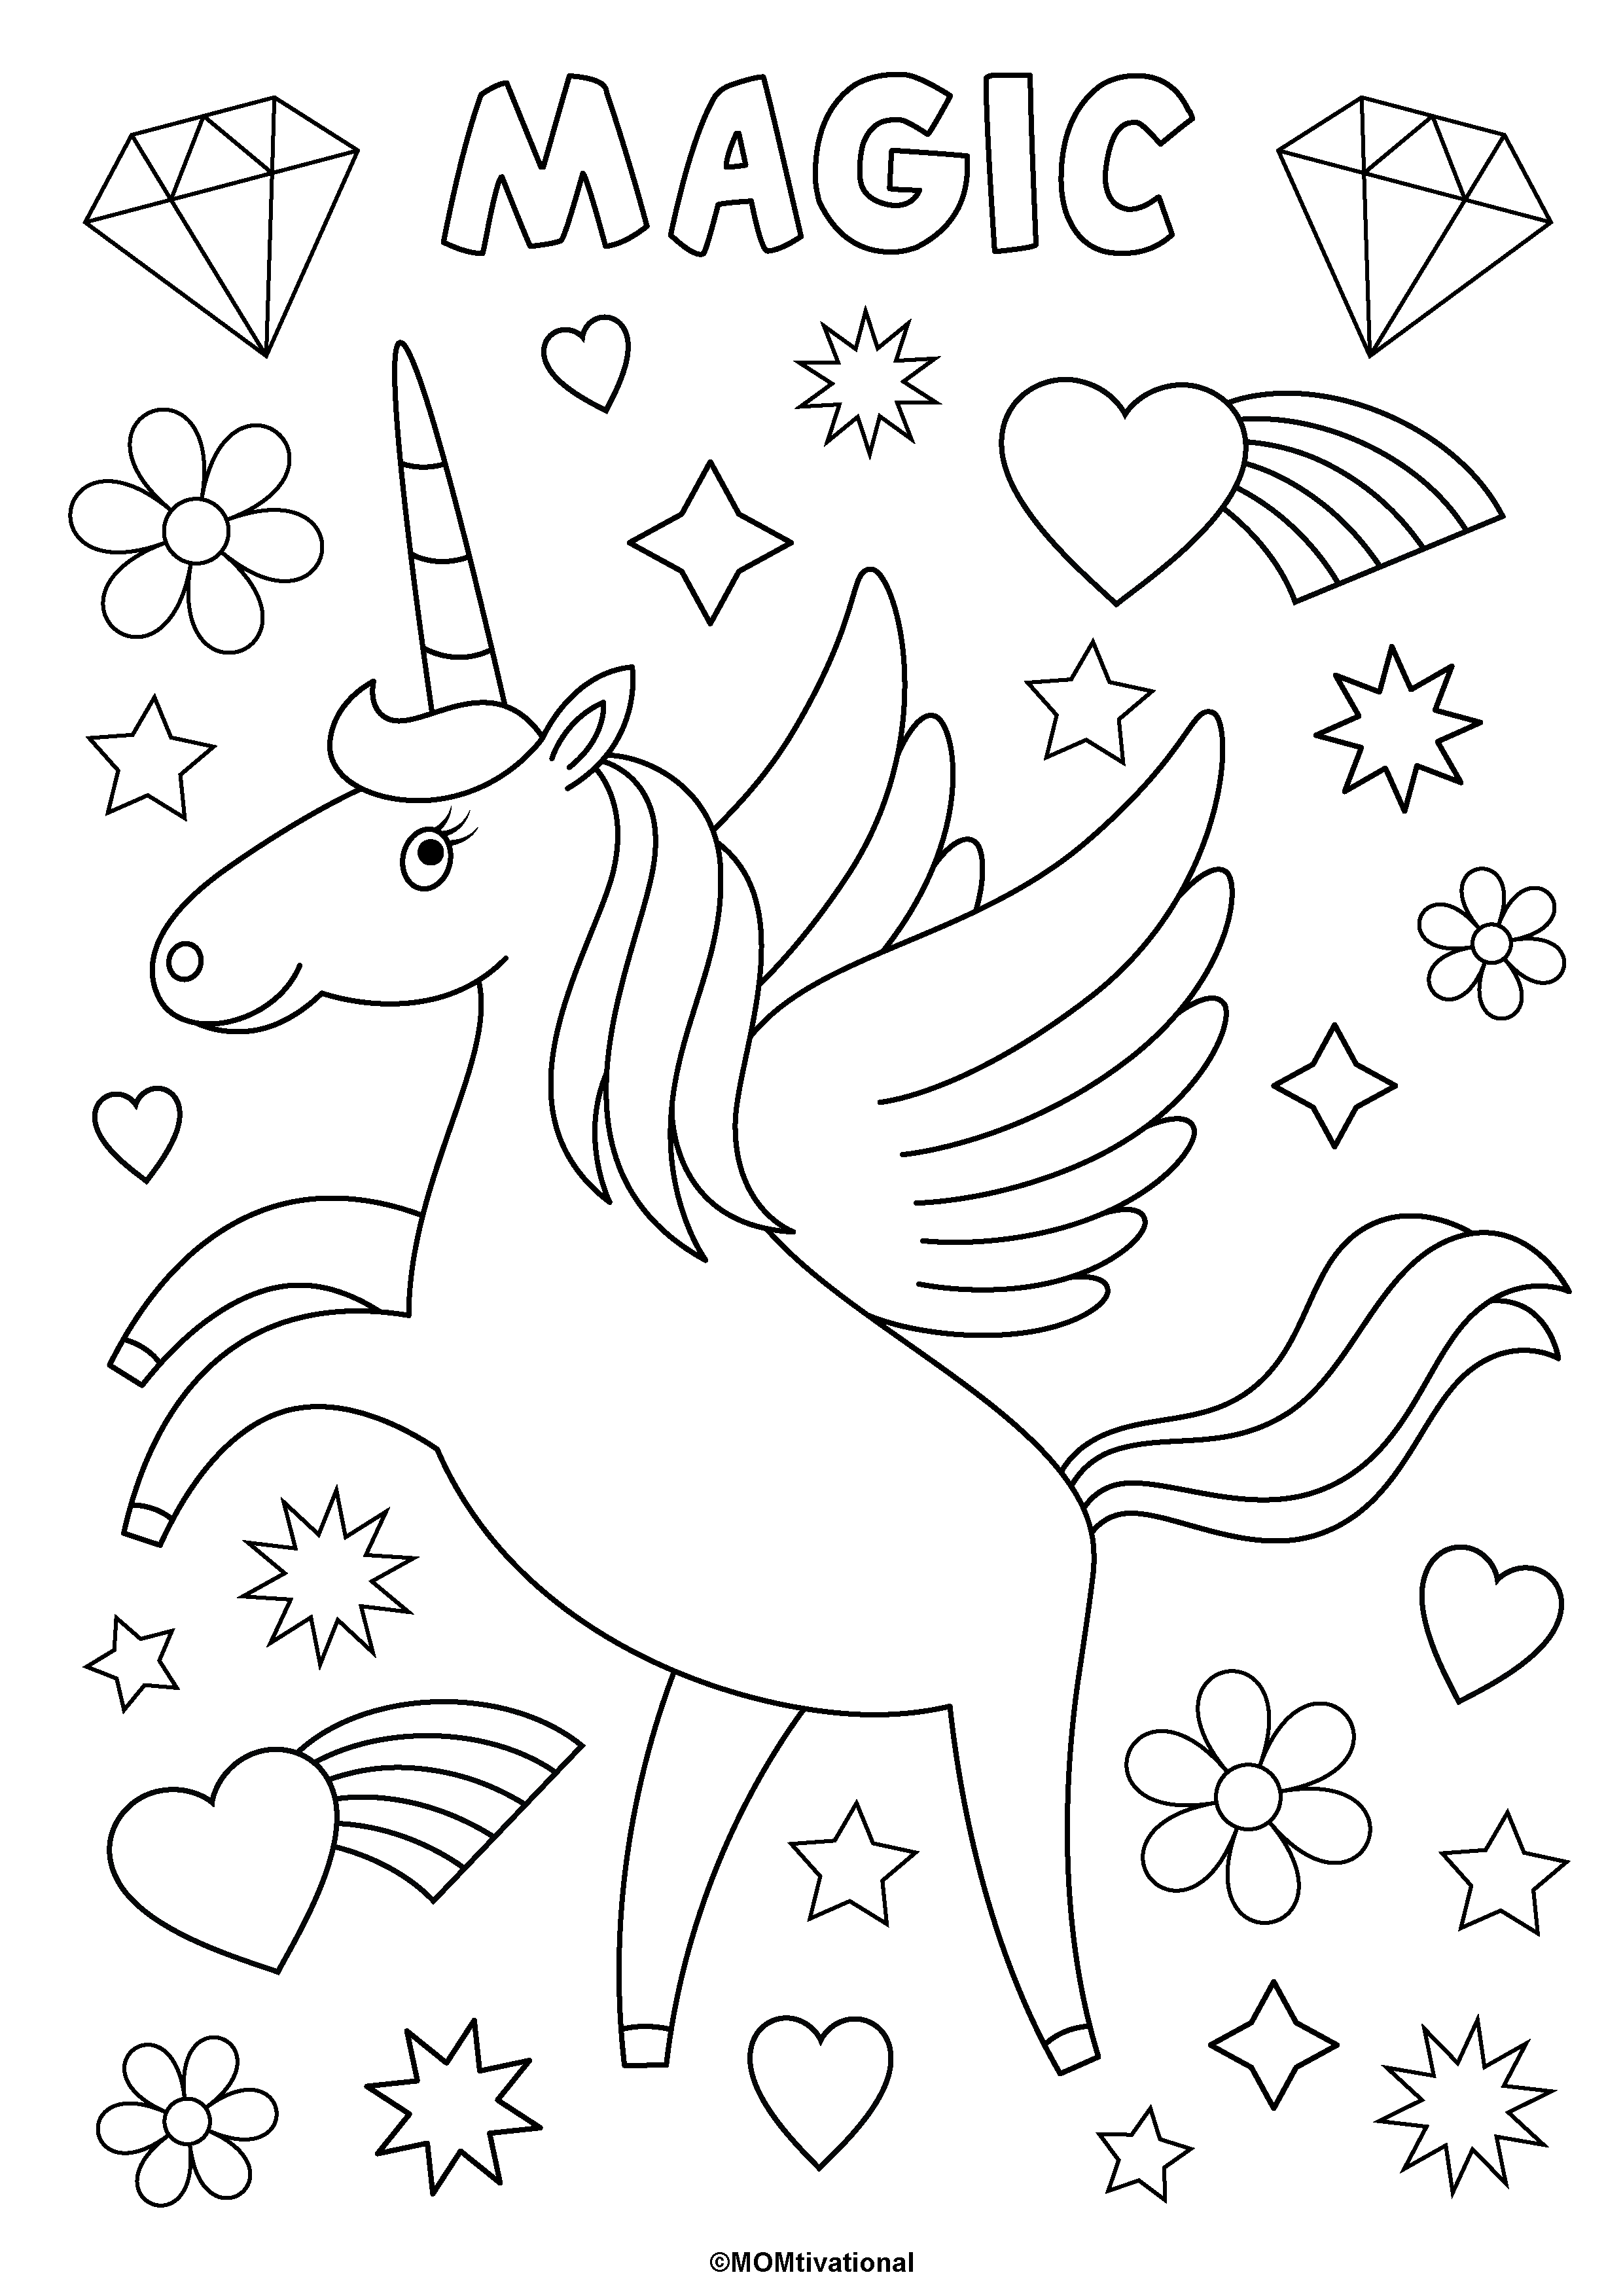 Fun And Free Unicorn Coloring Pages For Kids Momtivational Unicorn Coloring Pages Free Kids Coloring Pages Love Coloring Pages